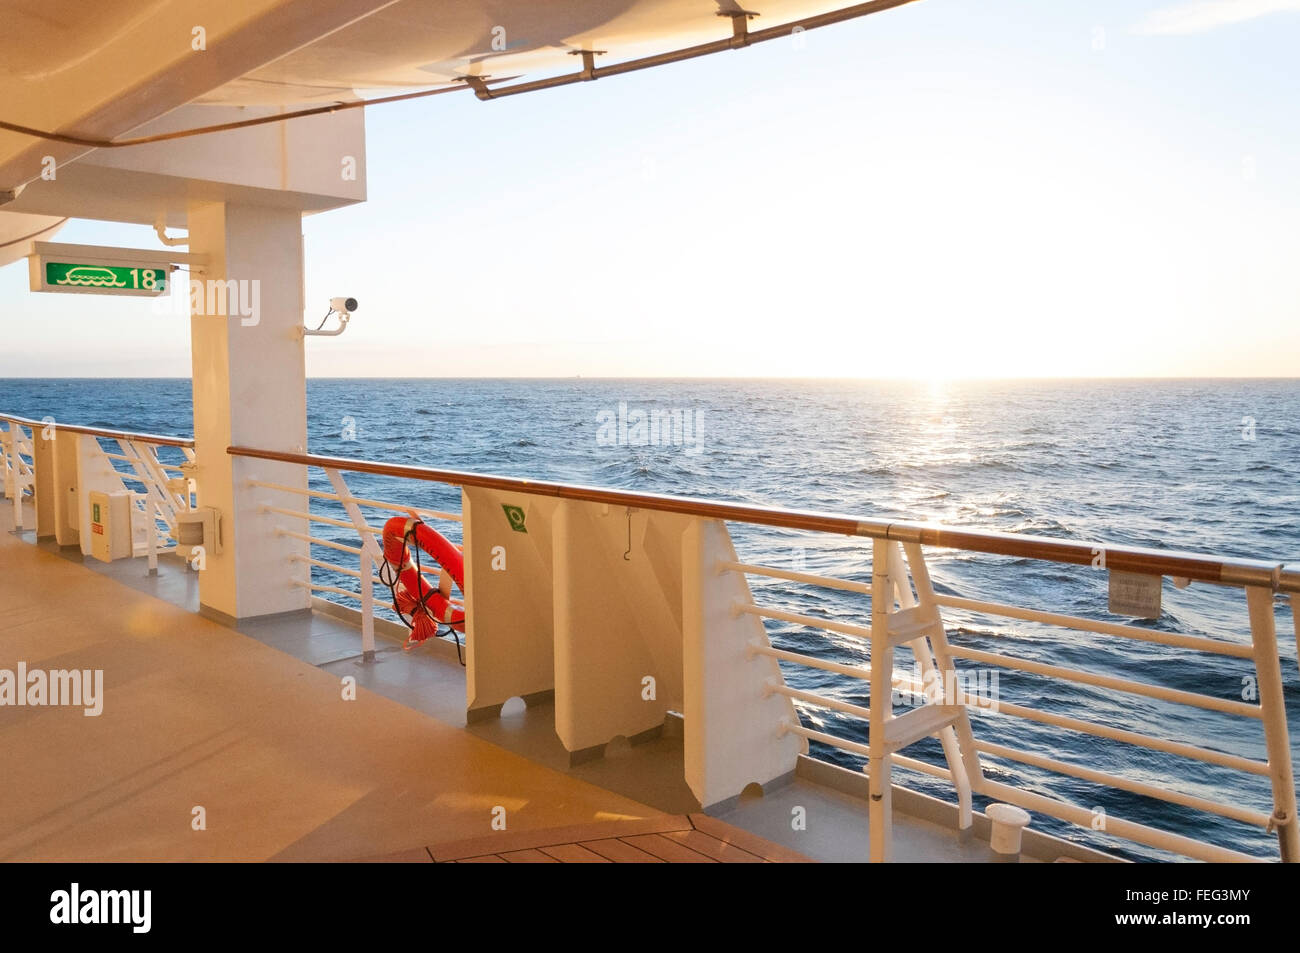 Deck at sunset, Royal Caribbean's 'Brilliance of the Seas' cruise ship, North Sea, Northern Europe - Stock Image